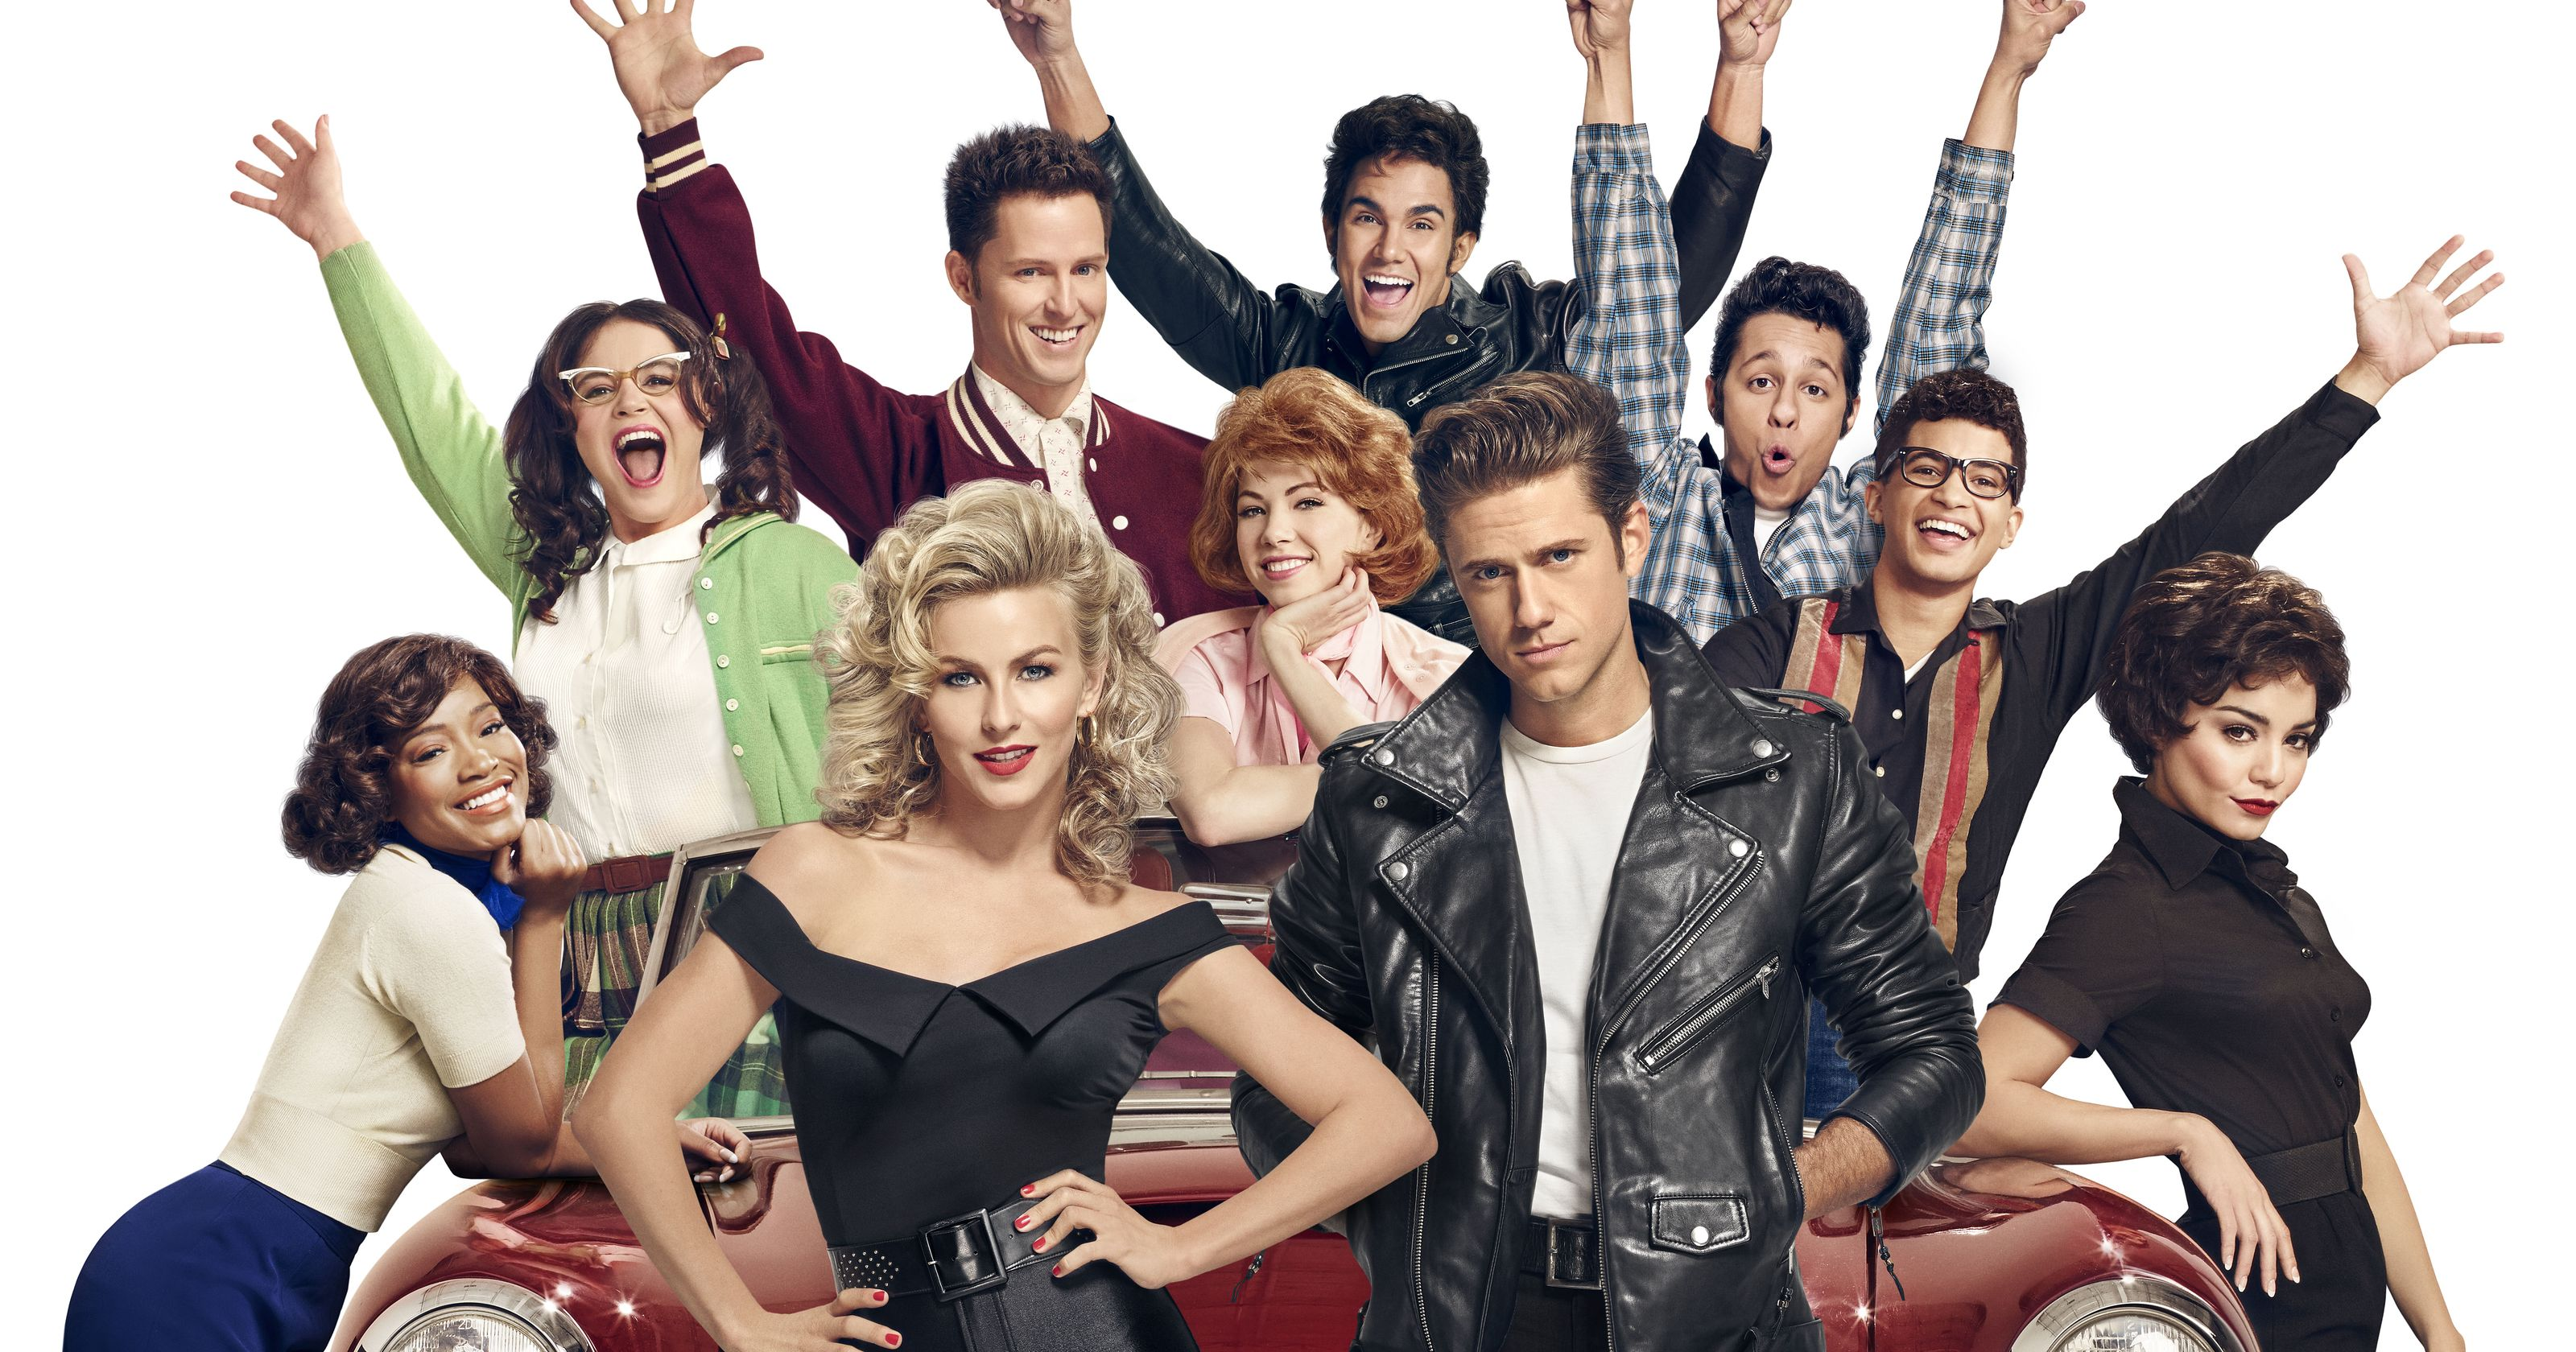 635859444948456391-GREASELIVE-F7